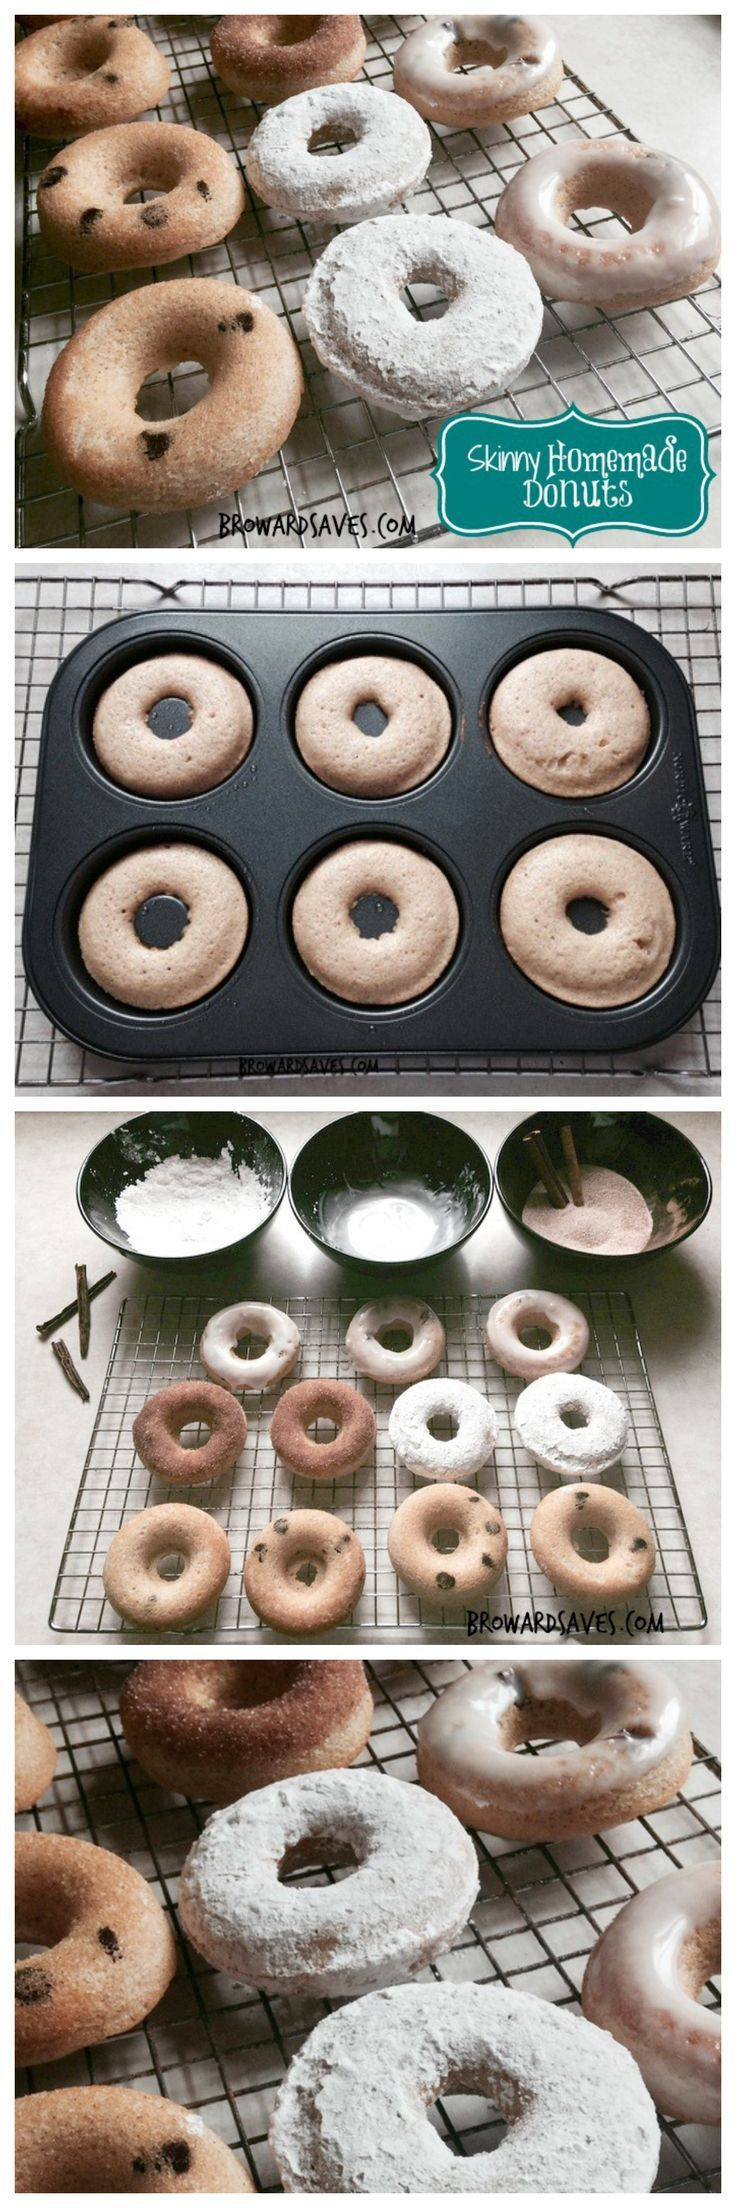 Easy to make and delicious! This Healthy Donut Recipe has only 60 calories and 1.1 grams of fat each. The perfect dessert on a diet!